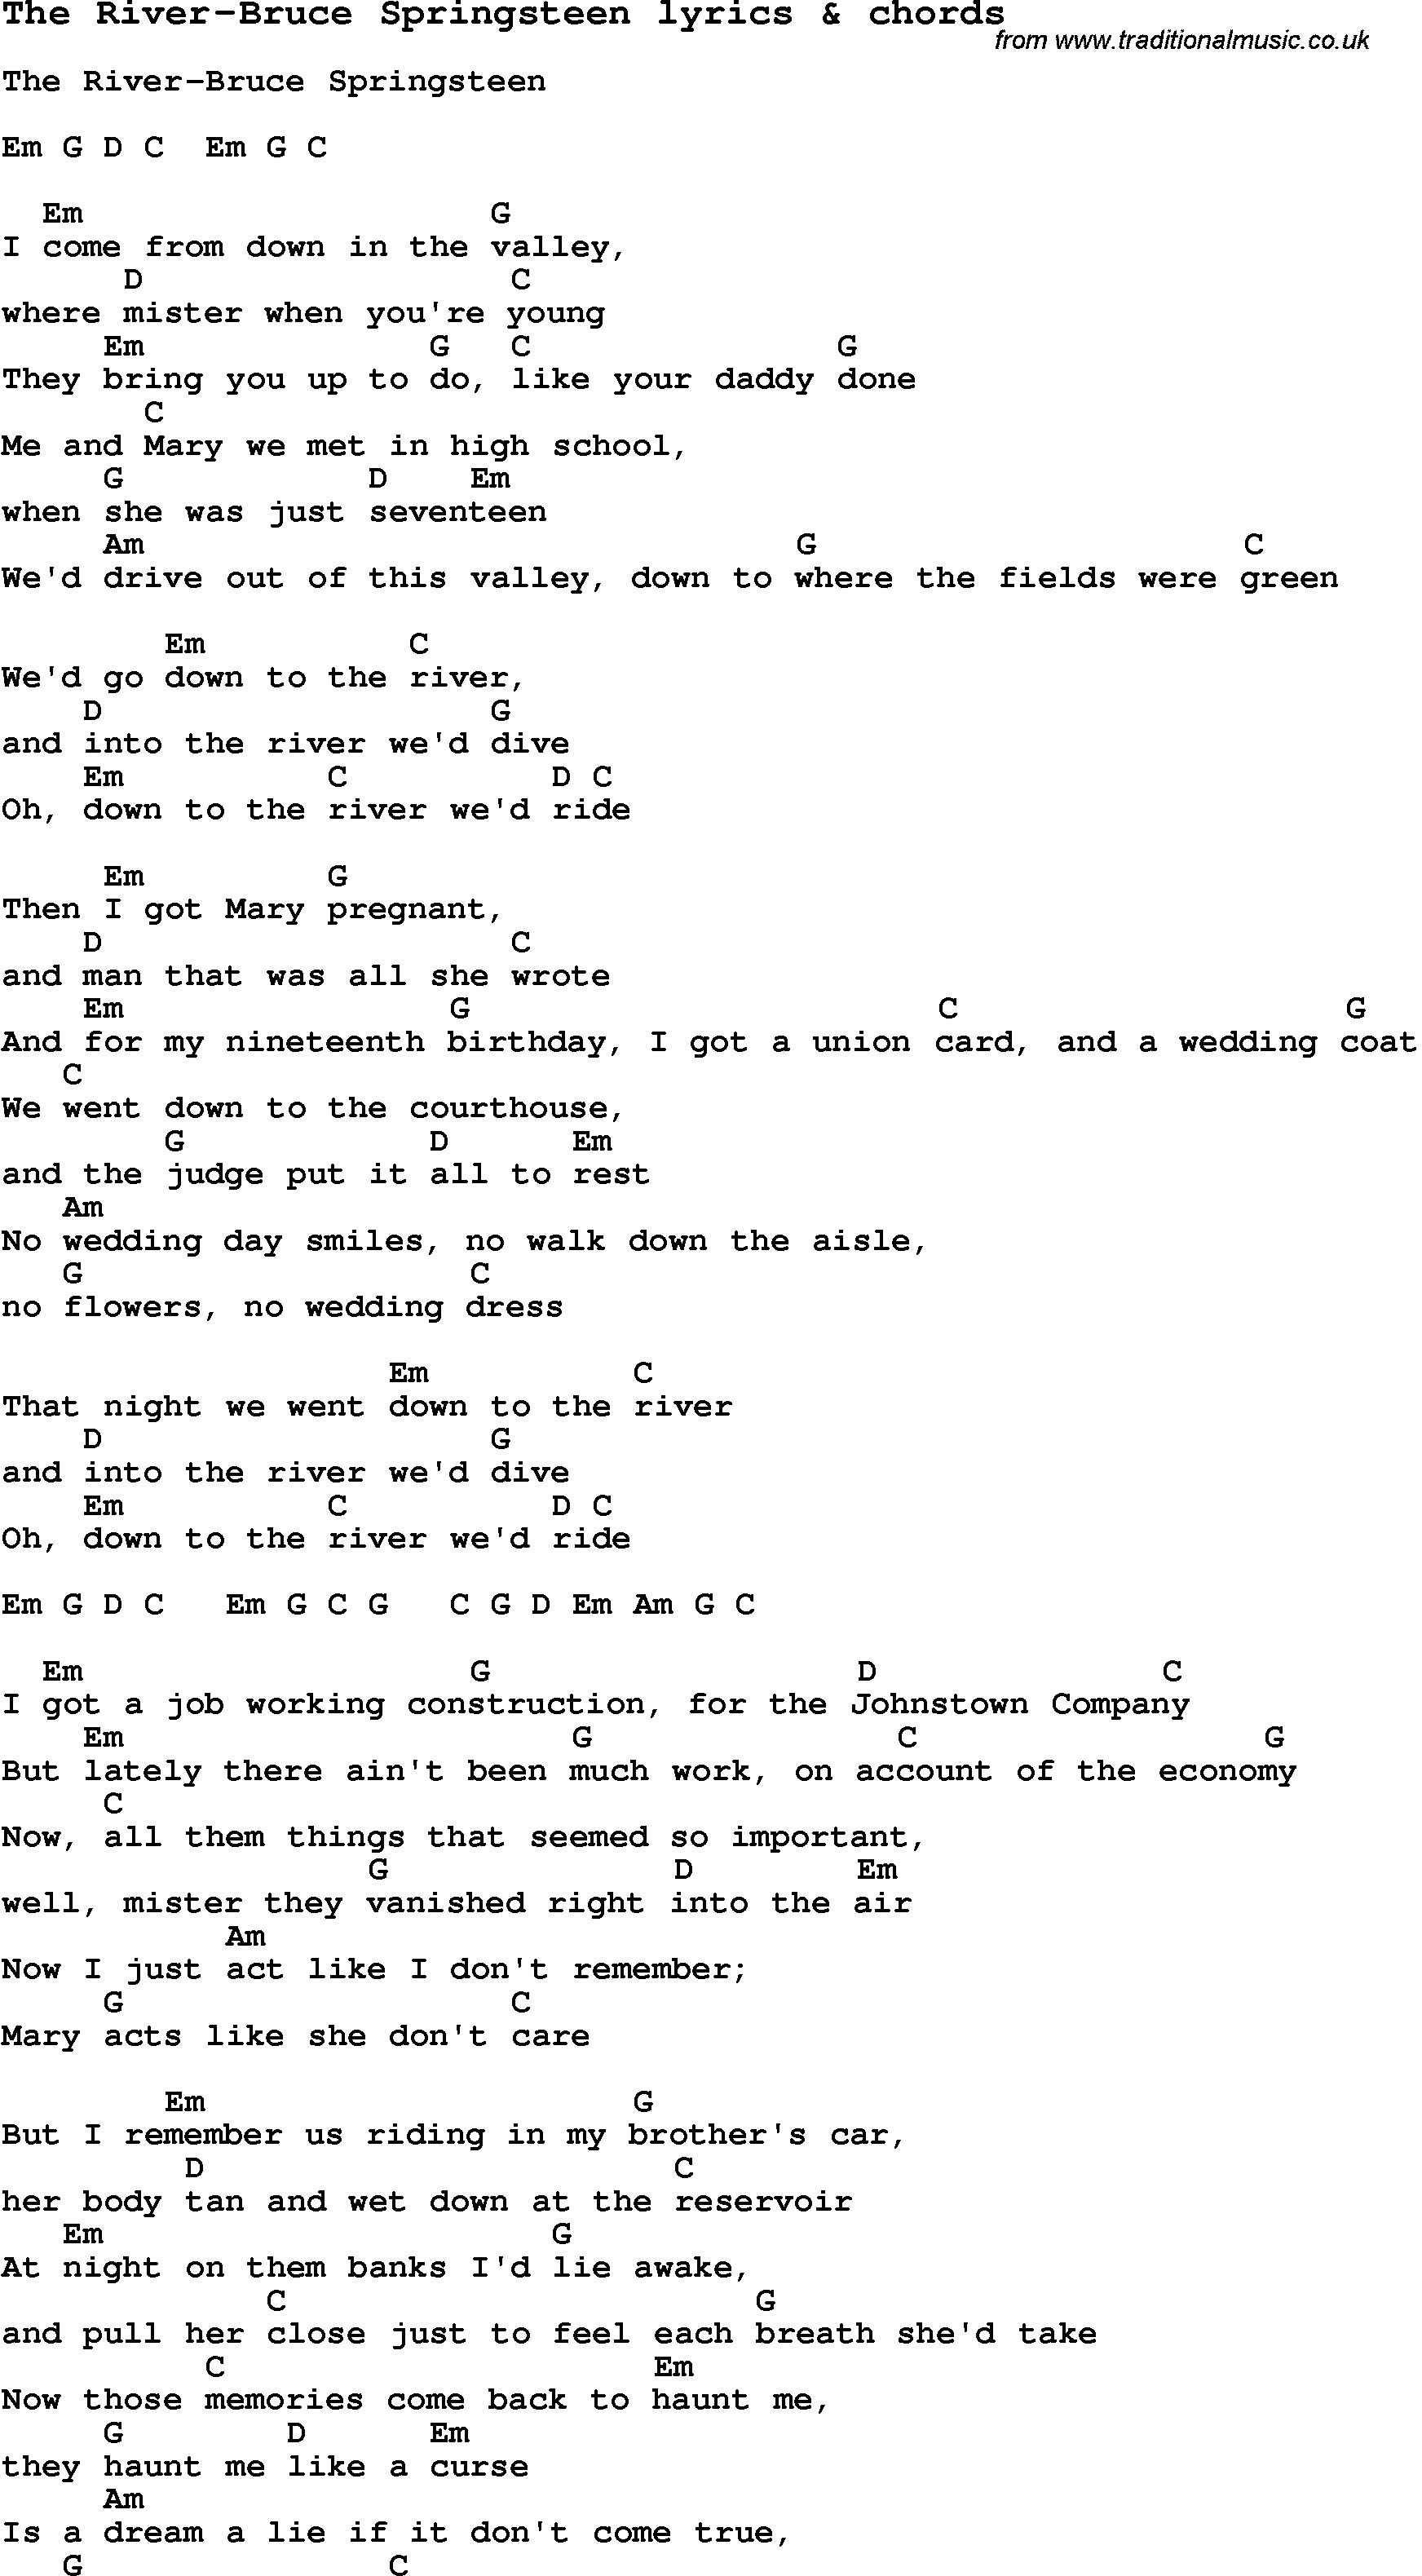 Love Song Lyrics forThe River Bruce Springsteen with chords.